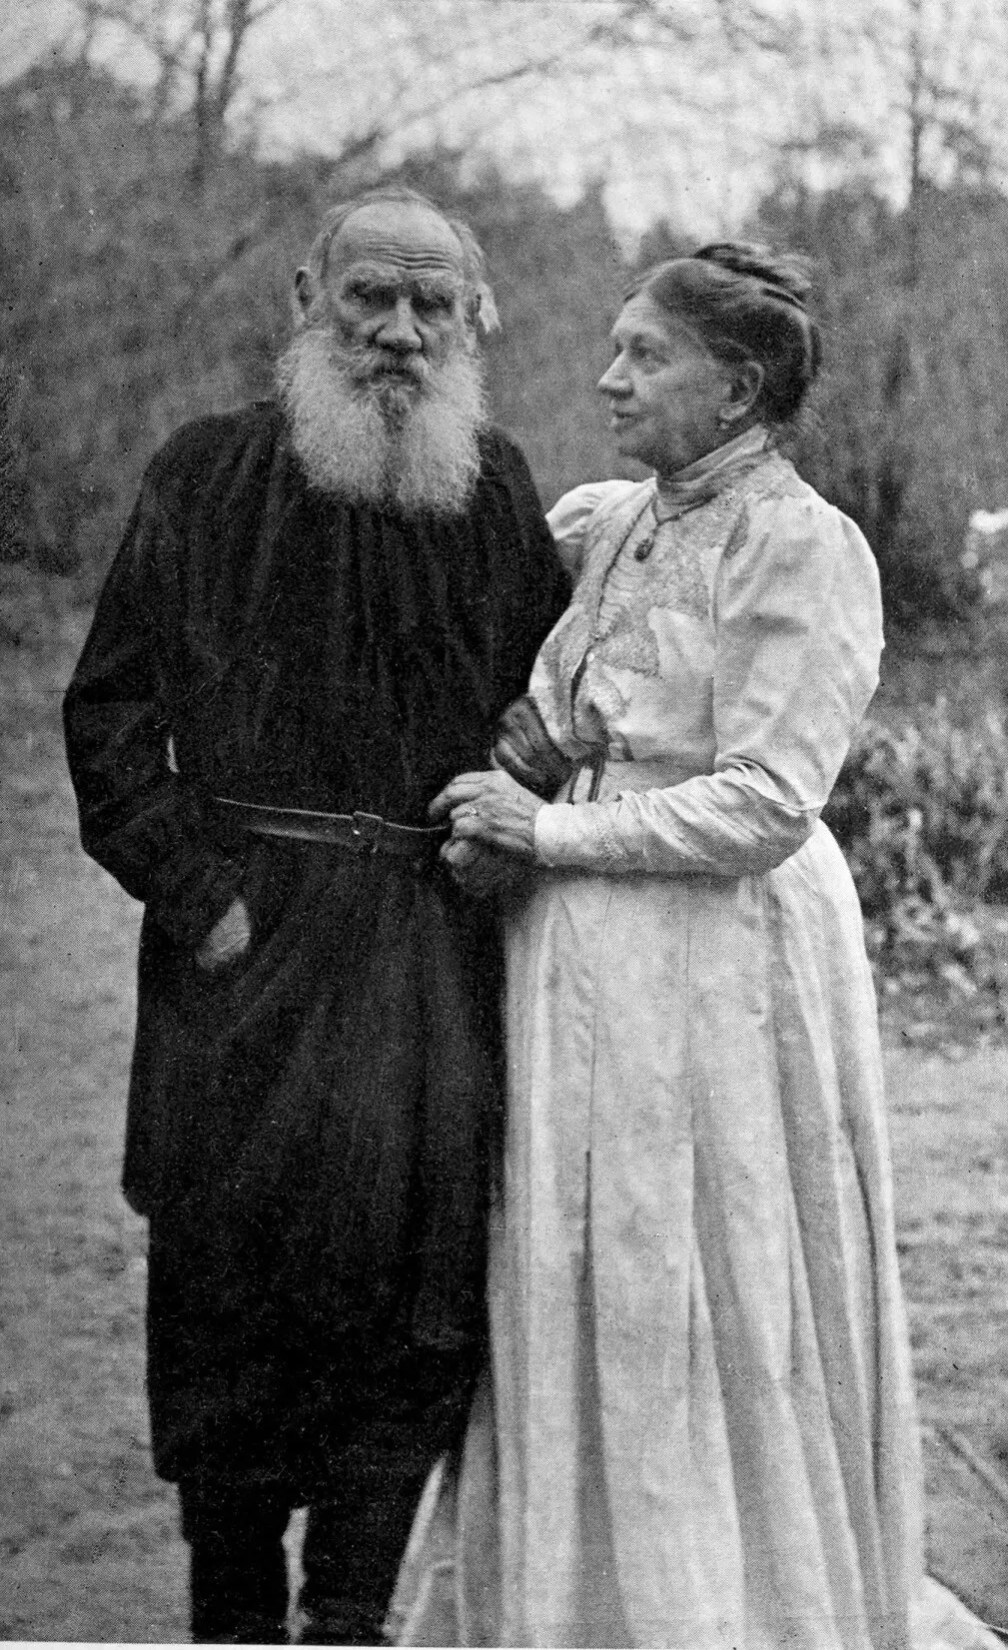 leo tolstoy quote about love historical snapshots